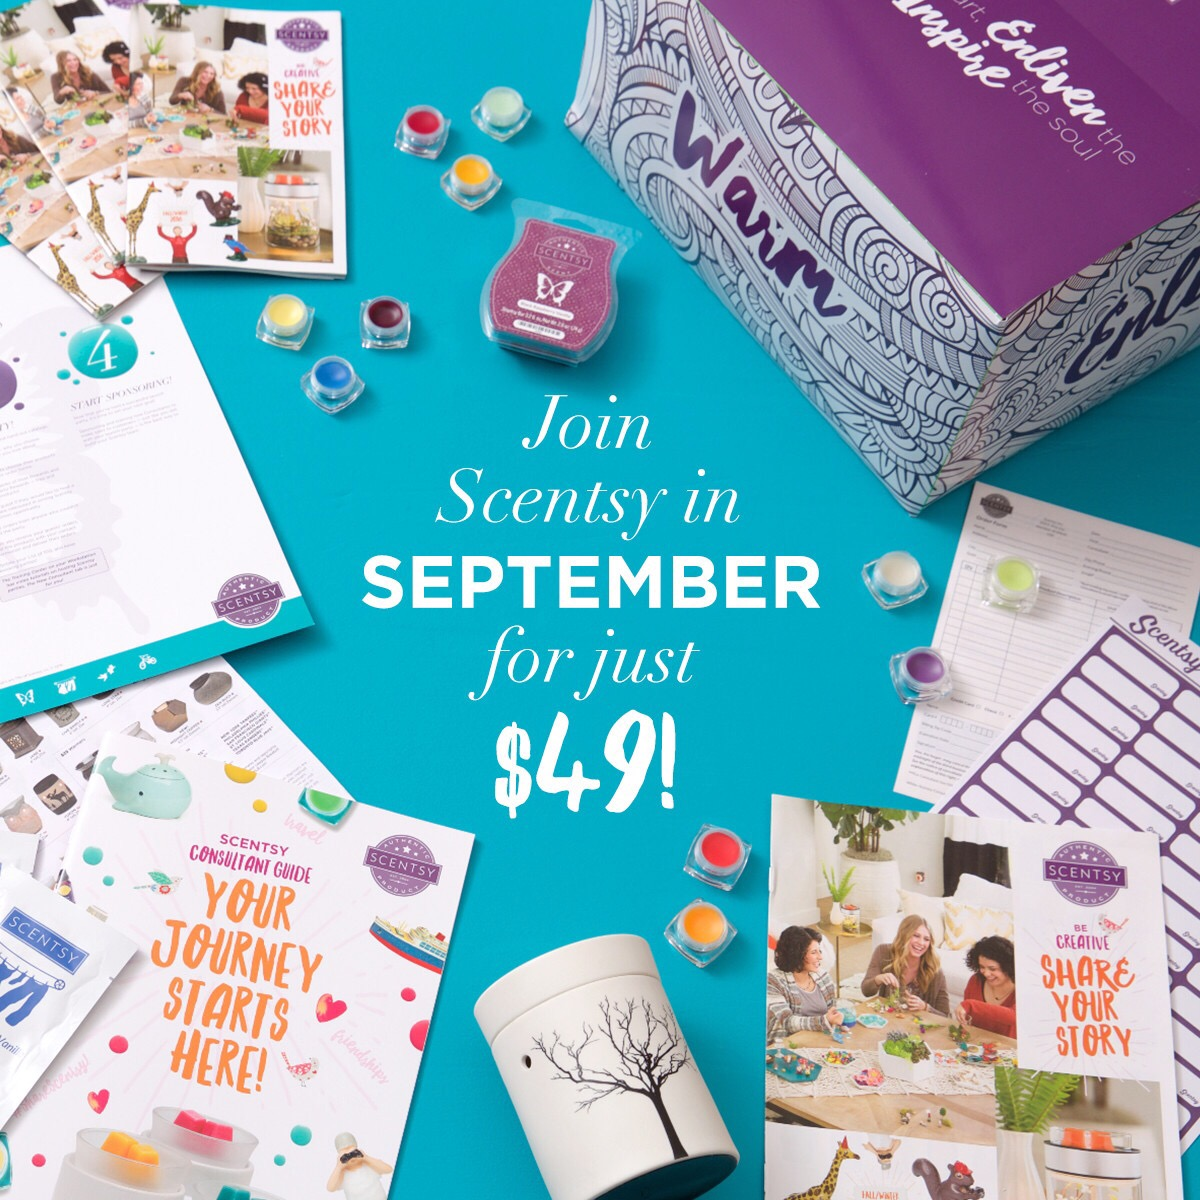 Join Scentsy on September